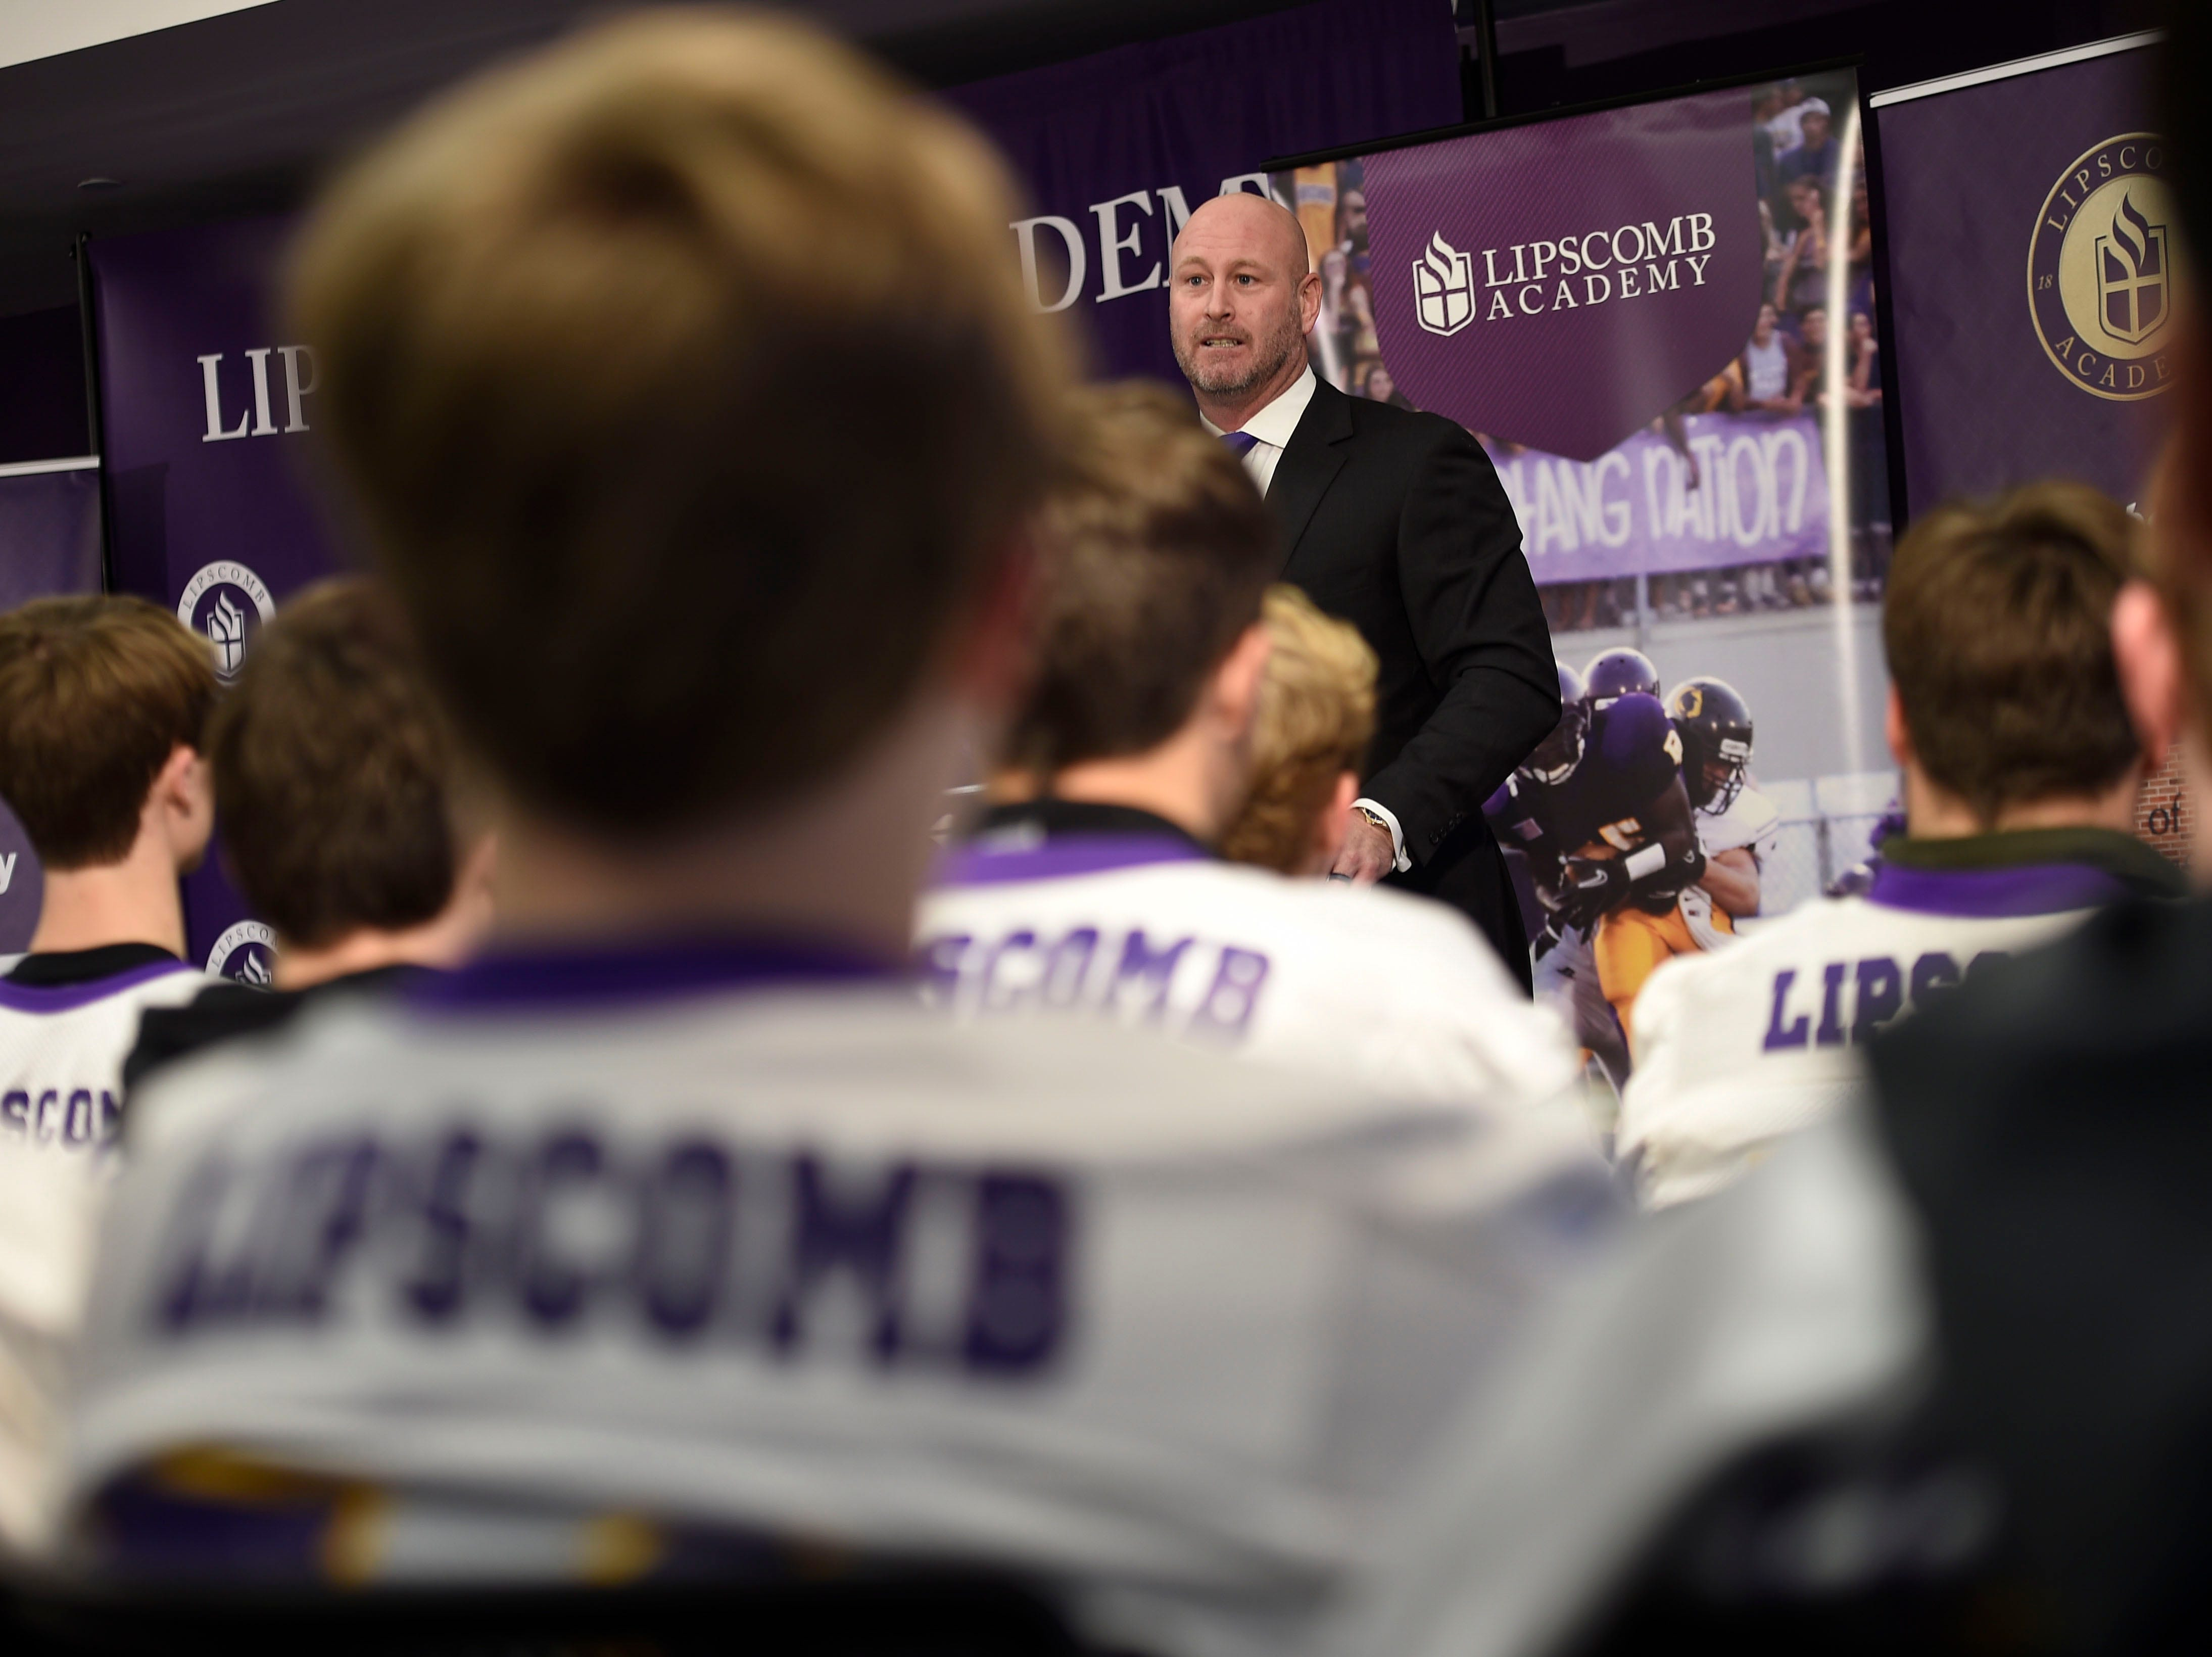 Trent Dilfer, the new football coach for Lipscomb Academy, addresses a packed room following the announcement on Friday.